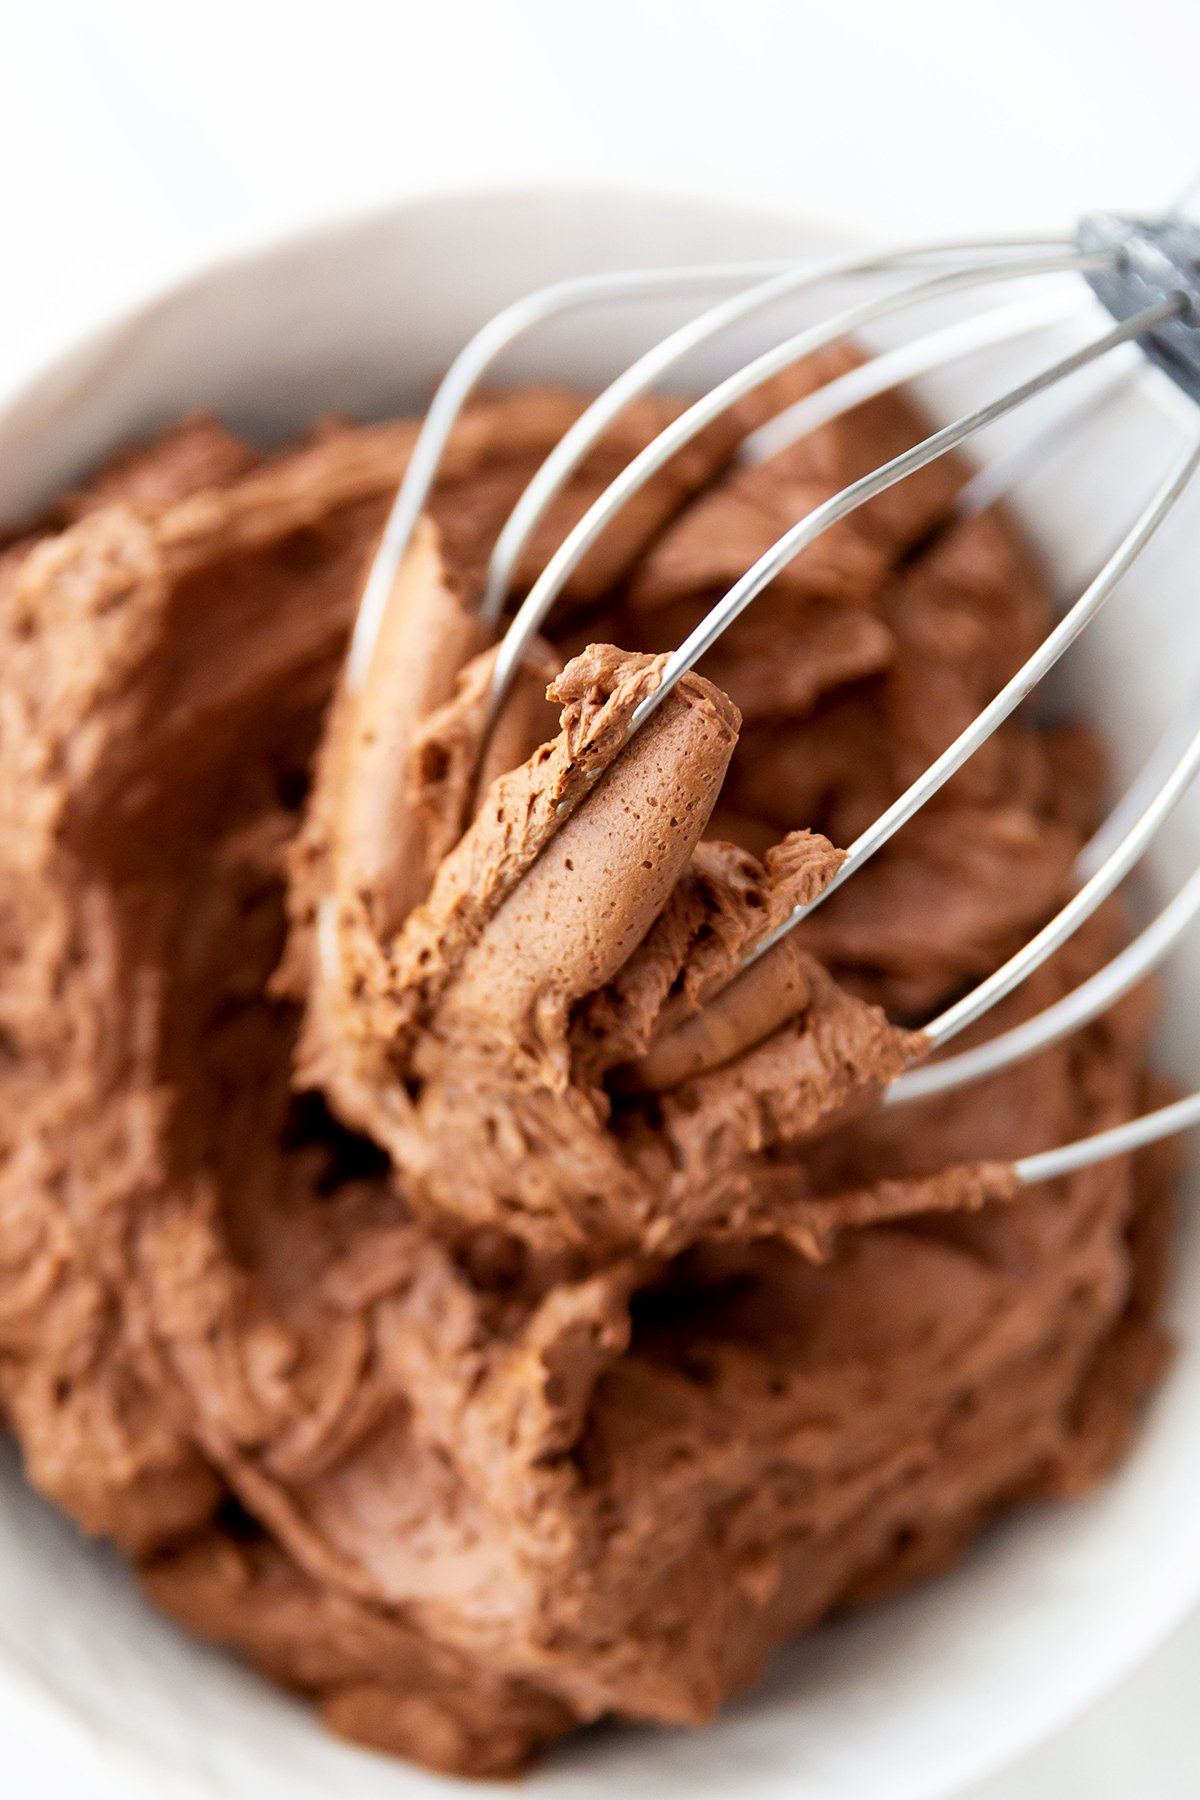 Cheater Canned Frosting Hack